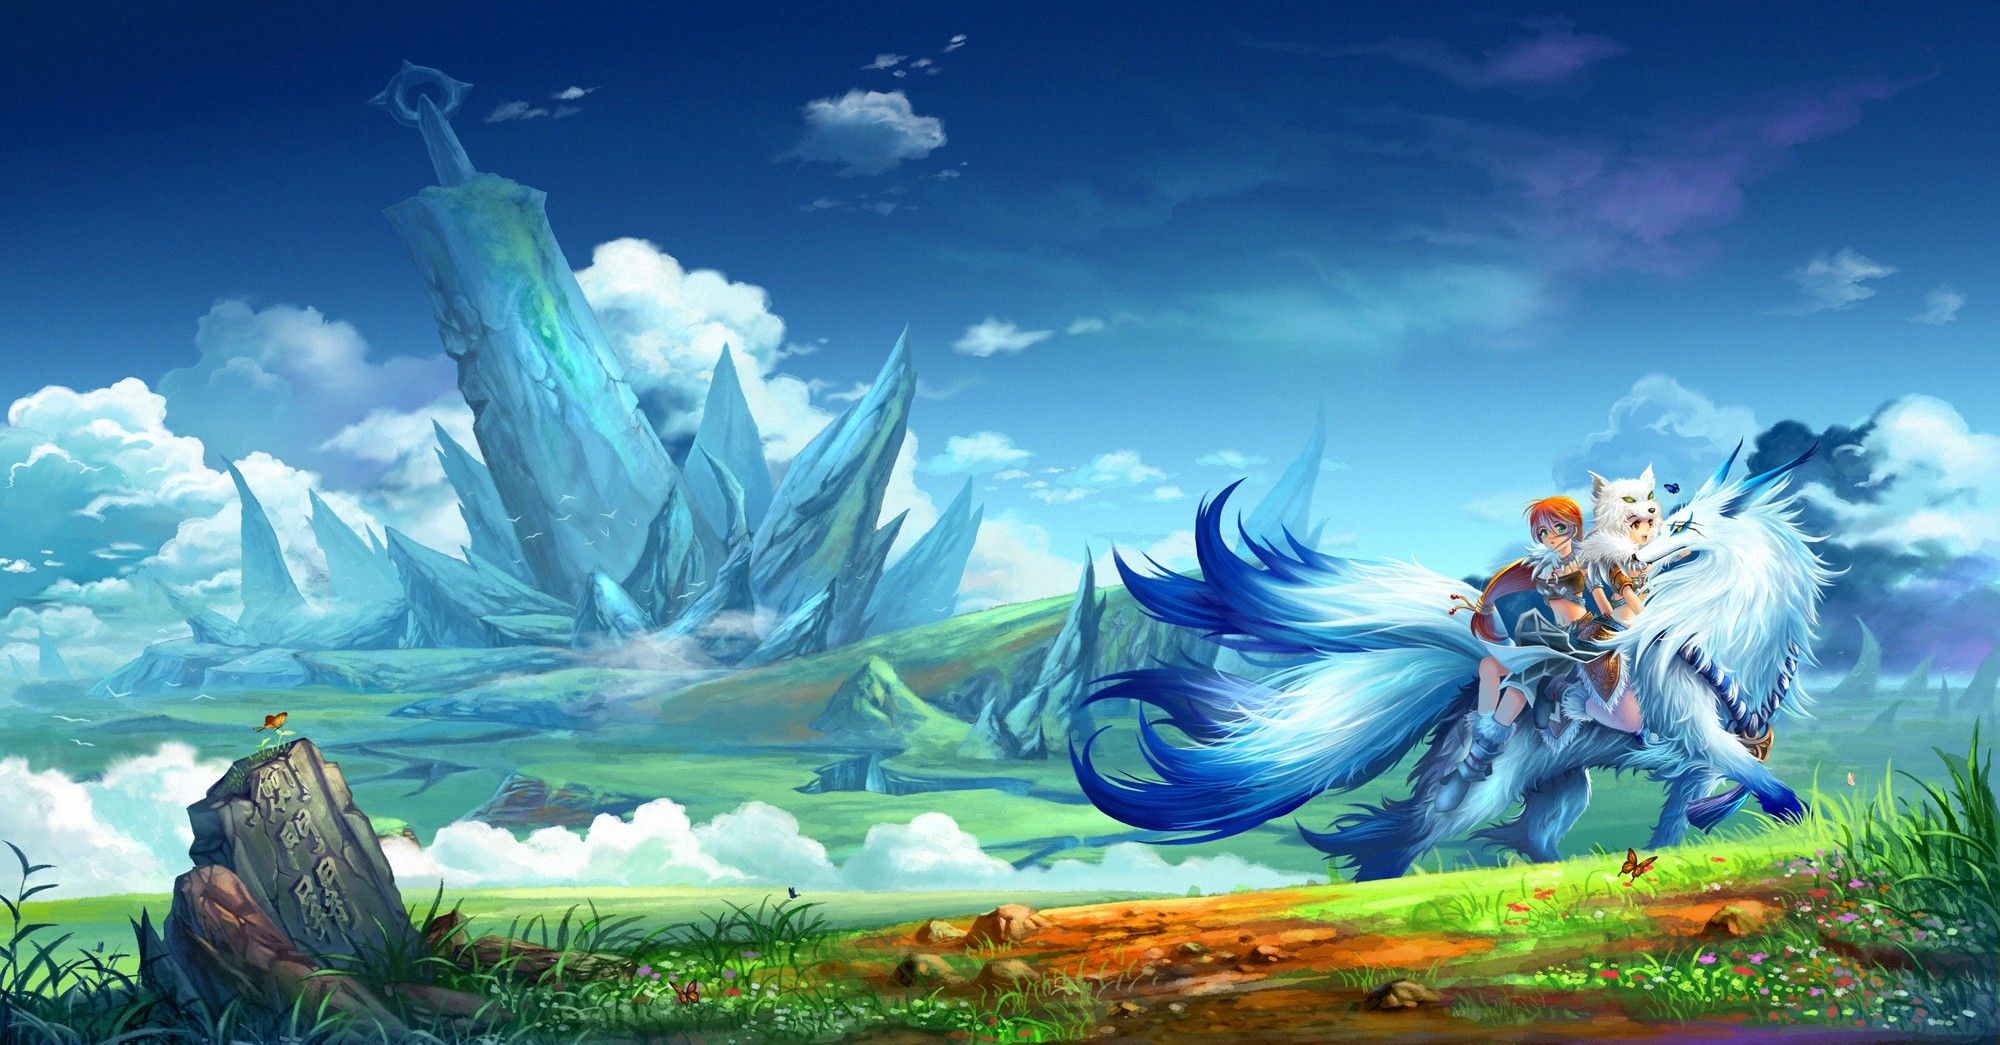 Anime Fantasy Landscape Wallpapers Free As Wallpaper Hd